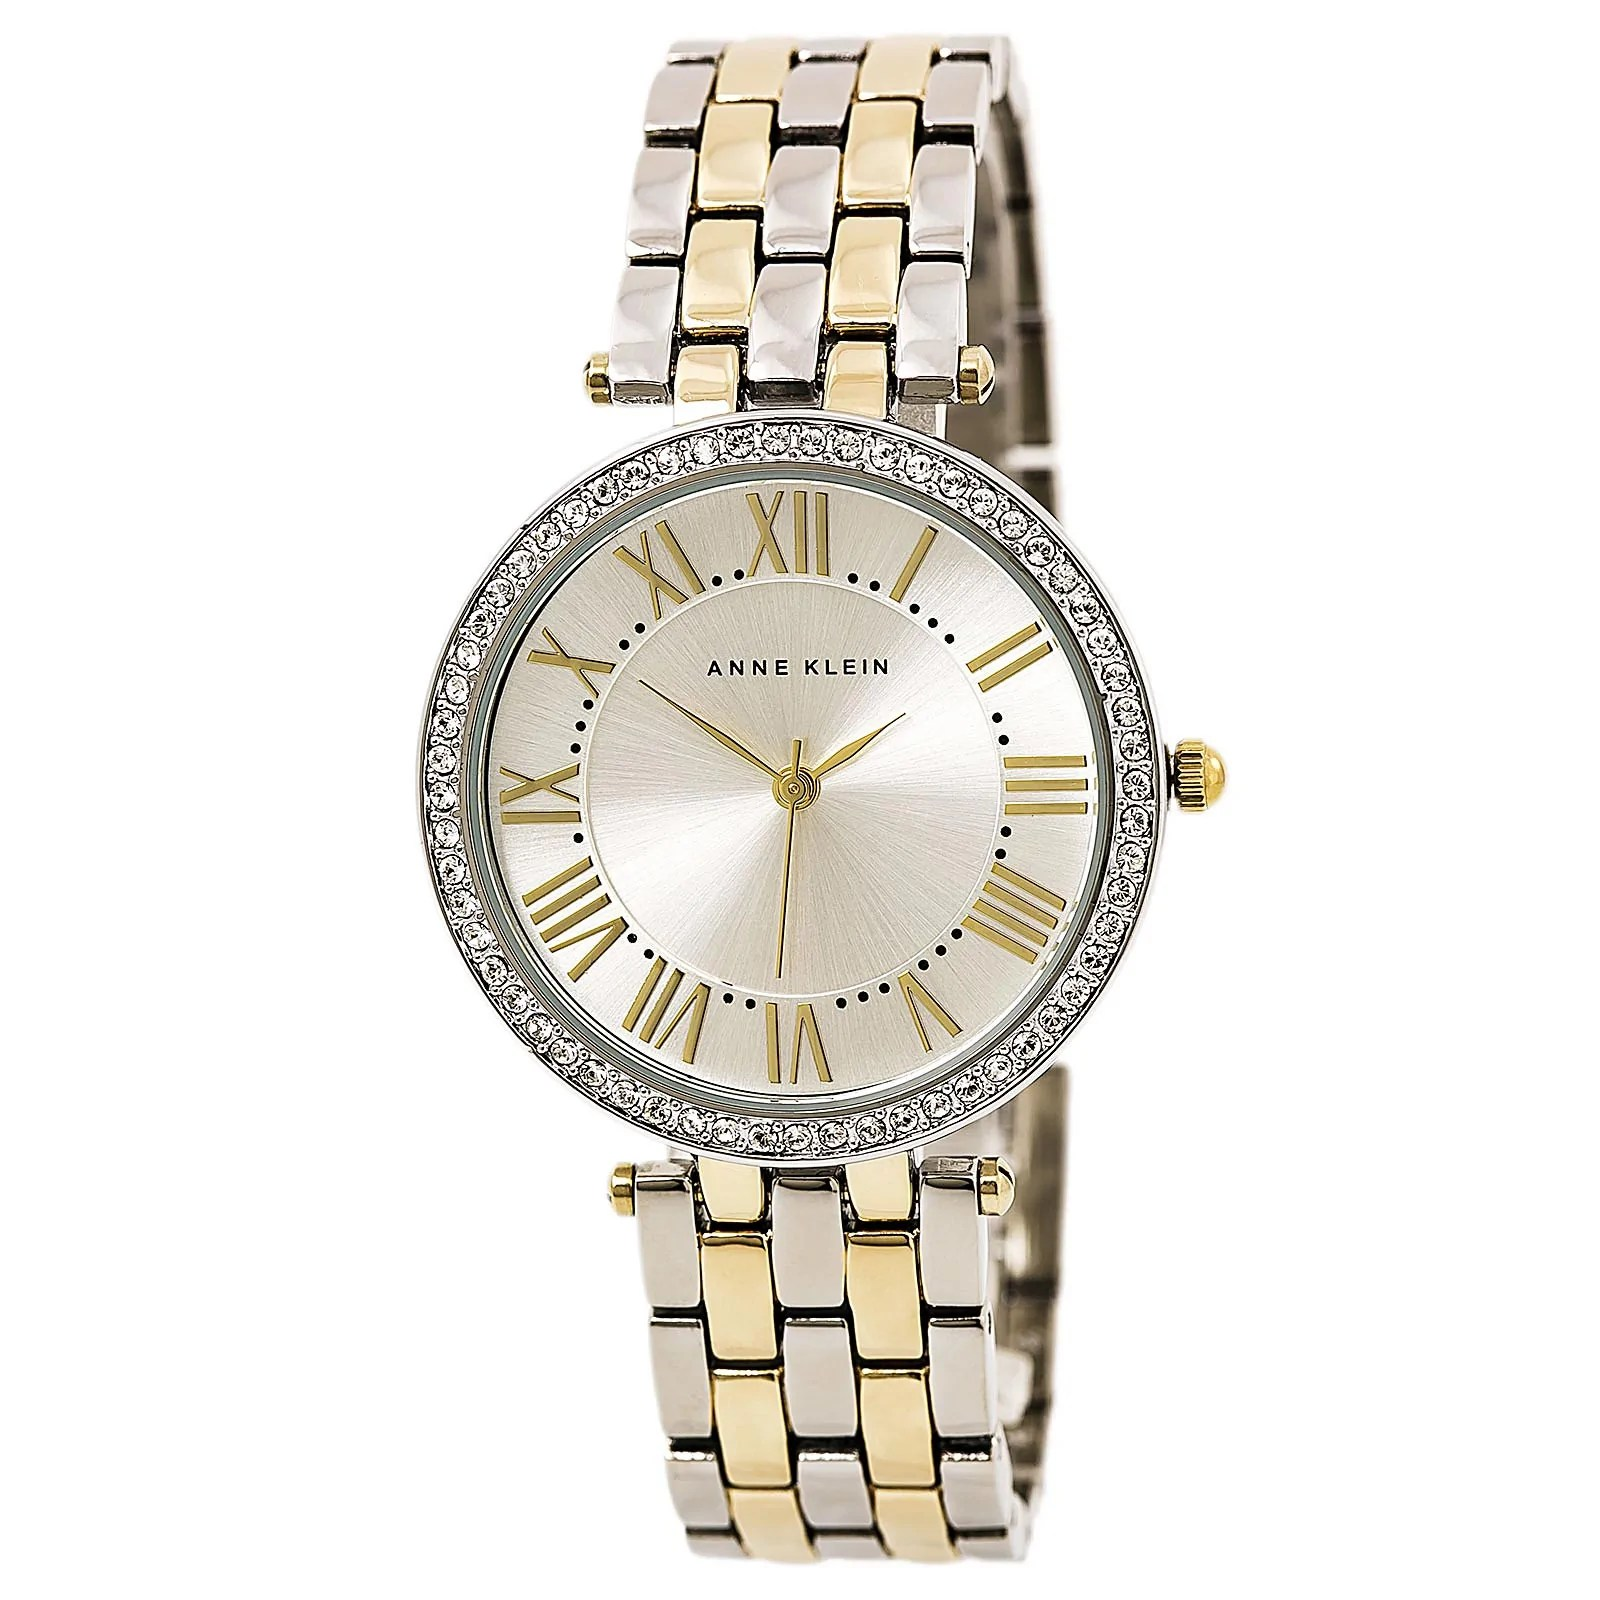 Anne Klein 2231SVTT Women's Silver Dial TT Steel Bracelet Watch